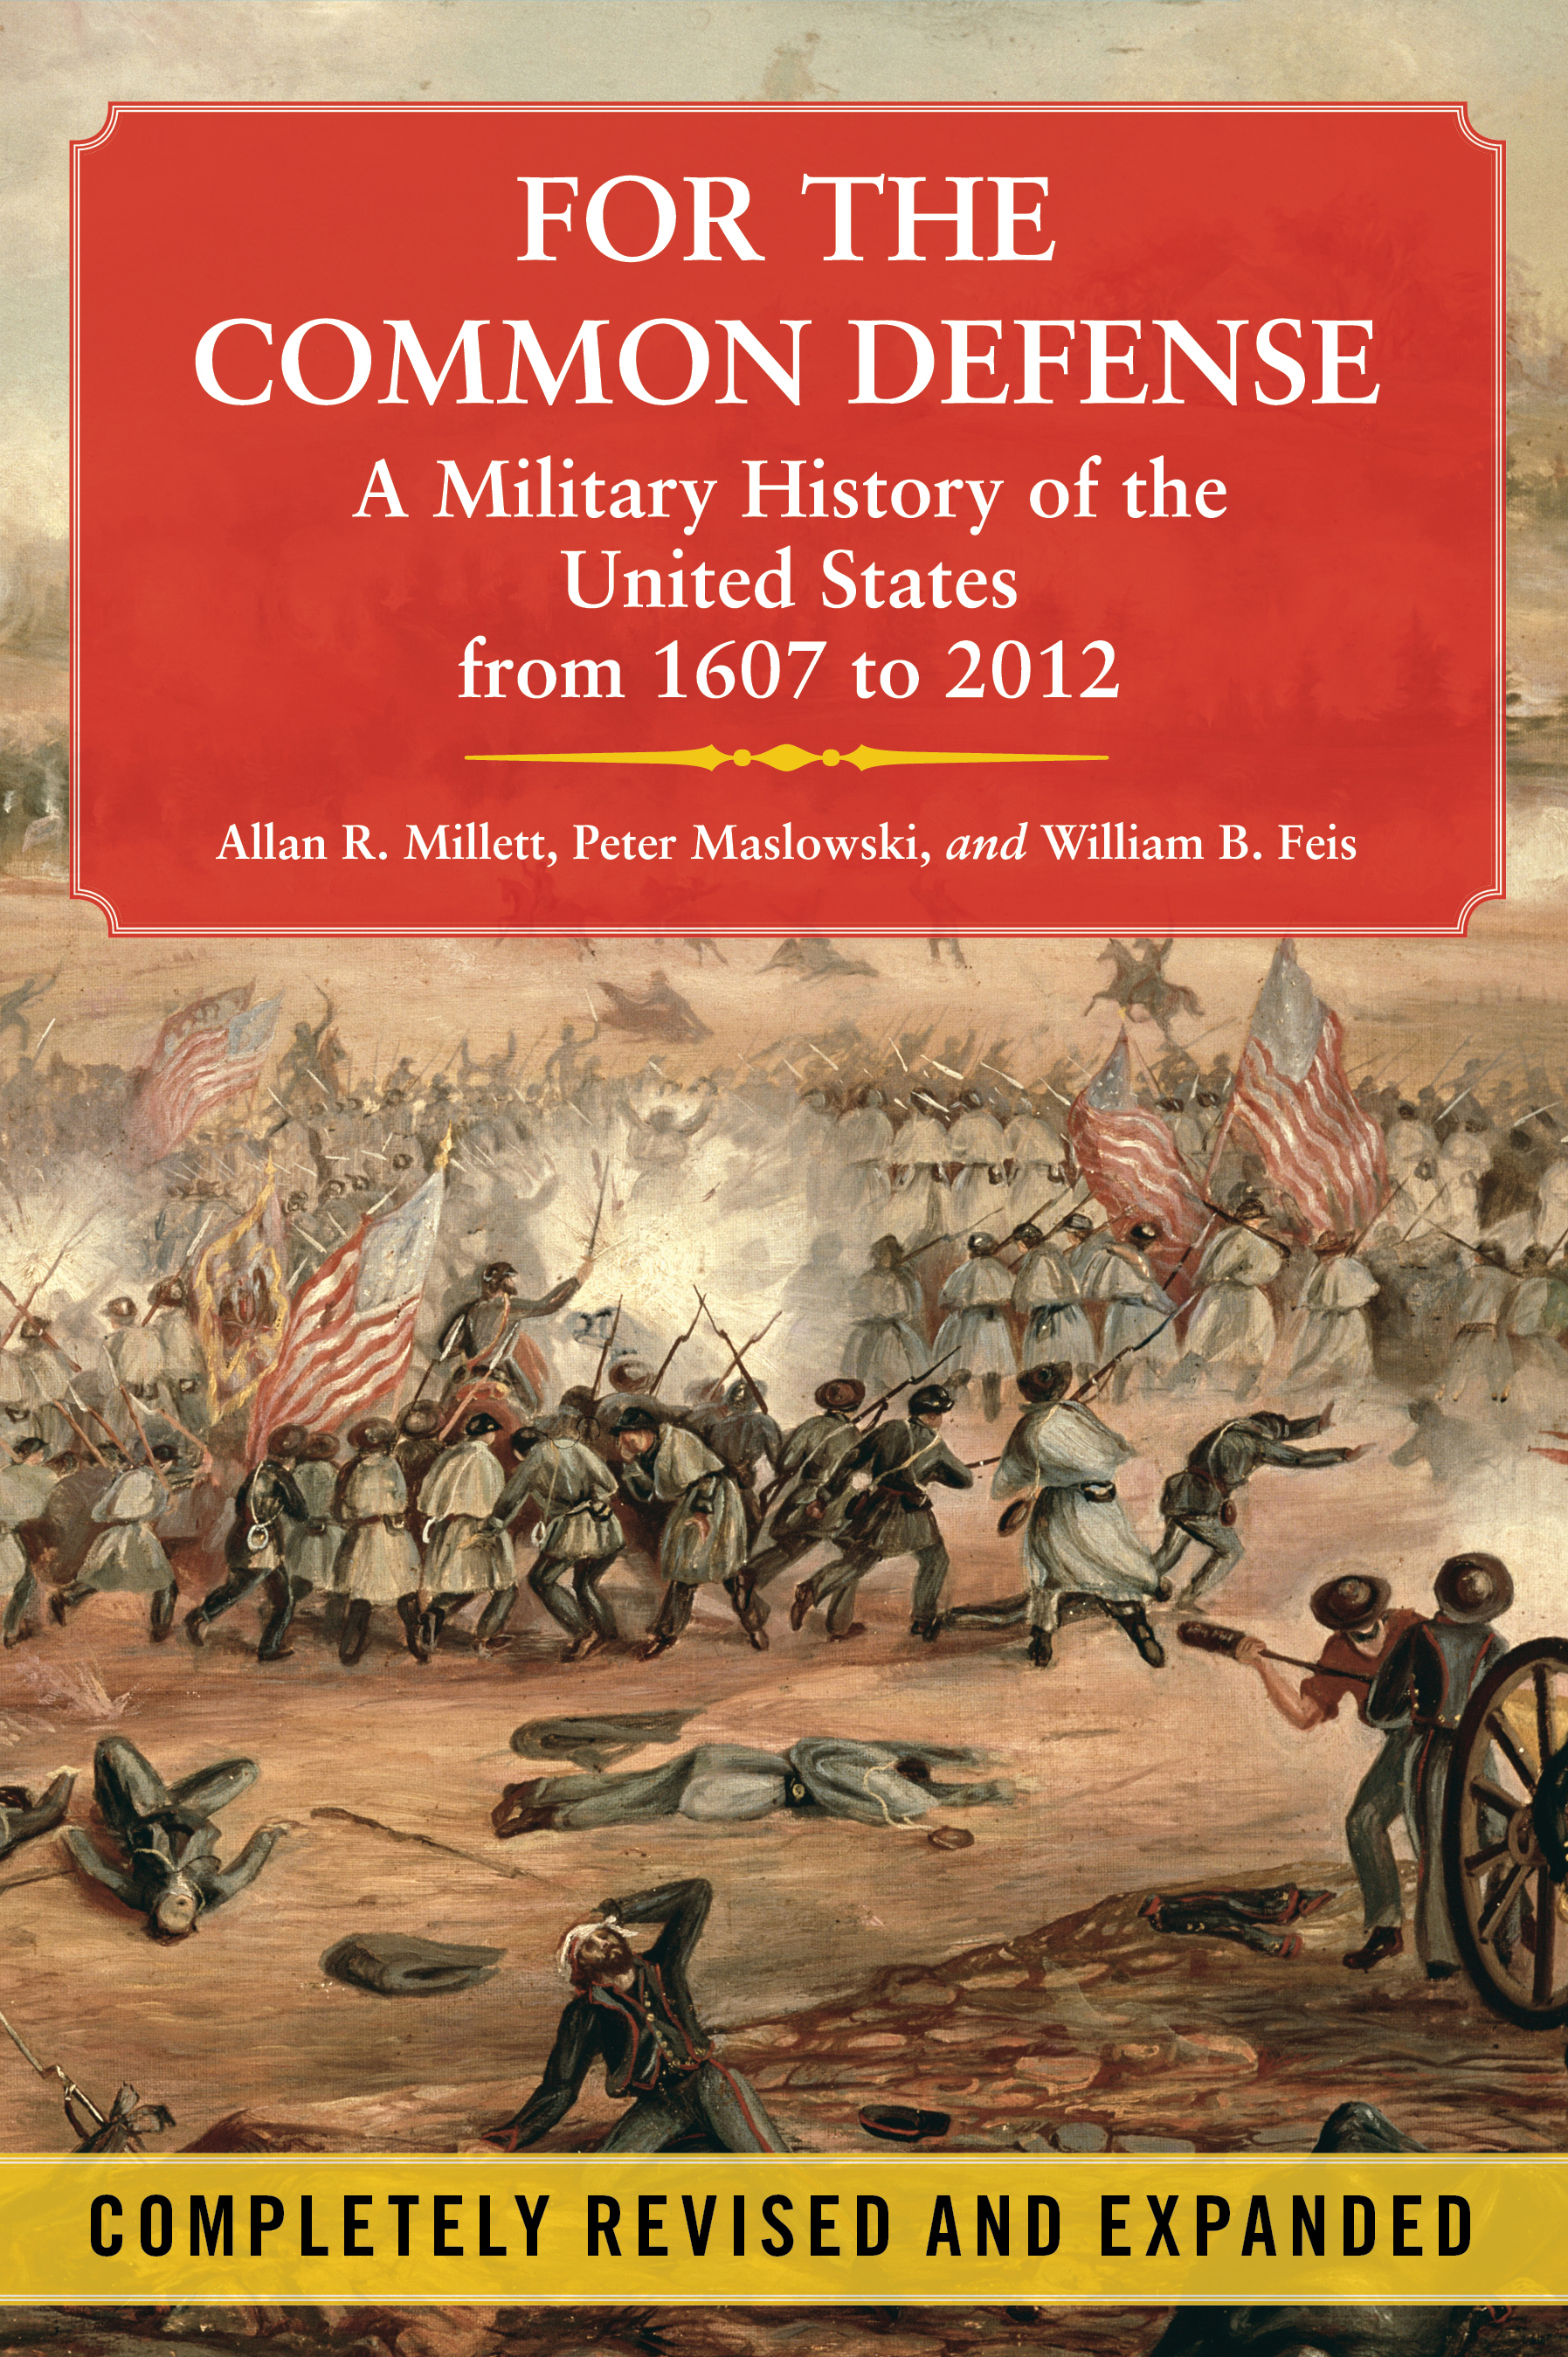 """a review of the book the governor and the rebel by wilcomb e washburn Debra meyers and melanie perreault (lanham, md: lexington books 2006), 117-40 warren m billings quarterly 63, no 2, 3rd ser (april 2006): 253-280 wilcomb e washburn, the governor and the rebel: a history citizenship in the era of dred scott,"""" chicago-kent law review 82, no 1 (2007): 329-59 tom holm."""